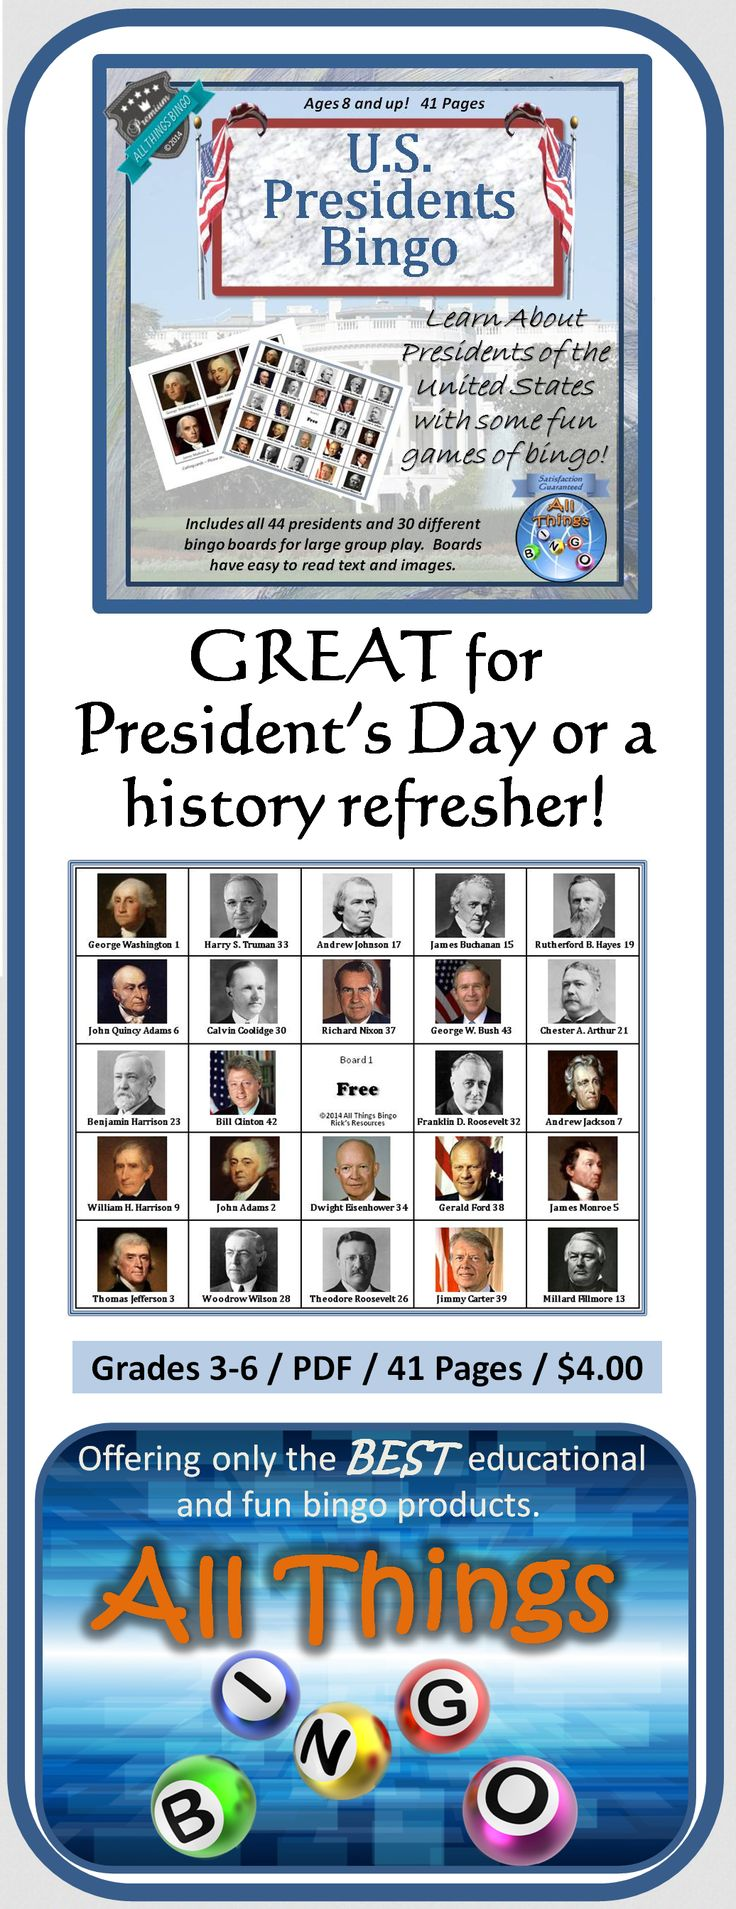 This is a great way to learn the Presidents of the United States. Whether needing a quick and fun history refresher or celebrating President's Day, this bingo game set with 30 boards for large group play is just the ticket.  All of the Presidents of the U.S. are represented in this game. Boards have clear images and text names for easy identification. Provide some markers and prizes, and you're all set for a fun and educational time!